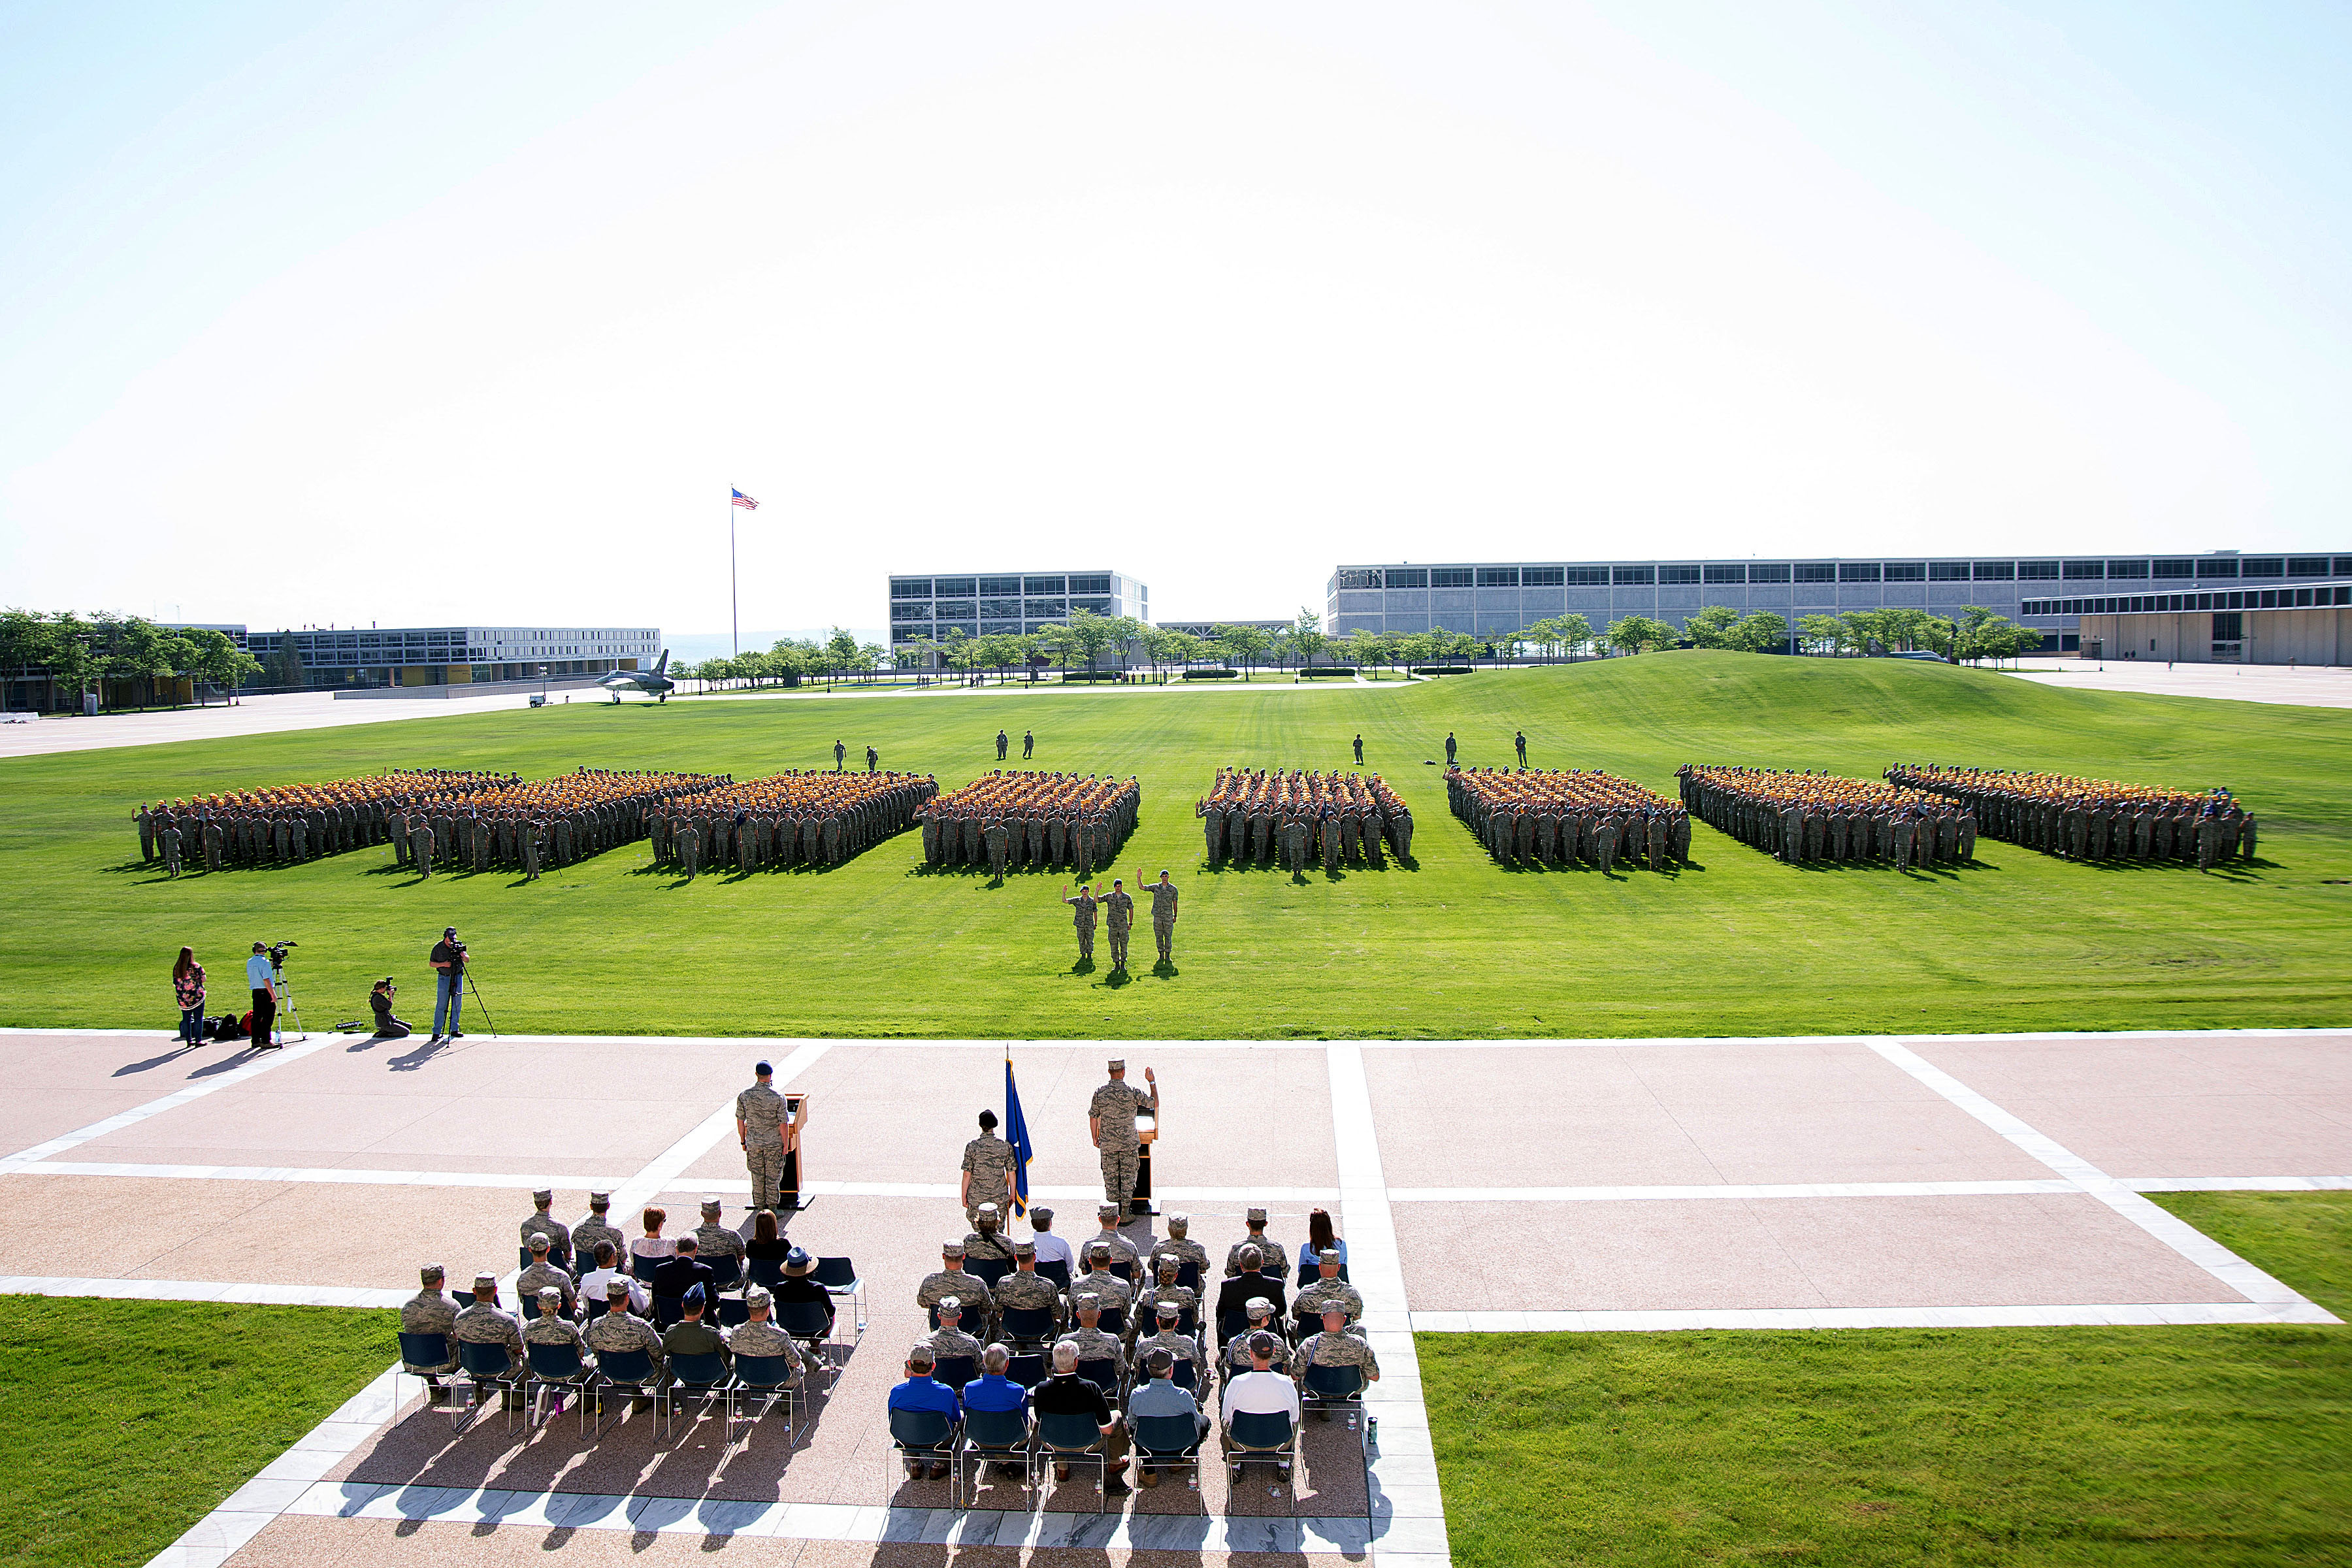 usafa summer seminar essay Fyi: summer seminar does not reflect your chances of an appointment it is  mostly a  why usafa ss essay(rate yourself out of 10): 8/10.